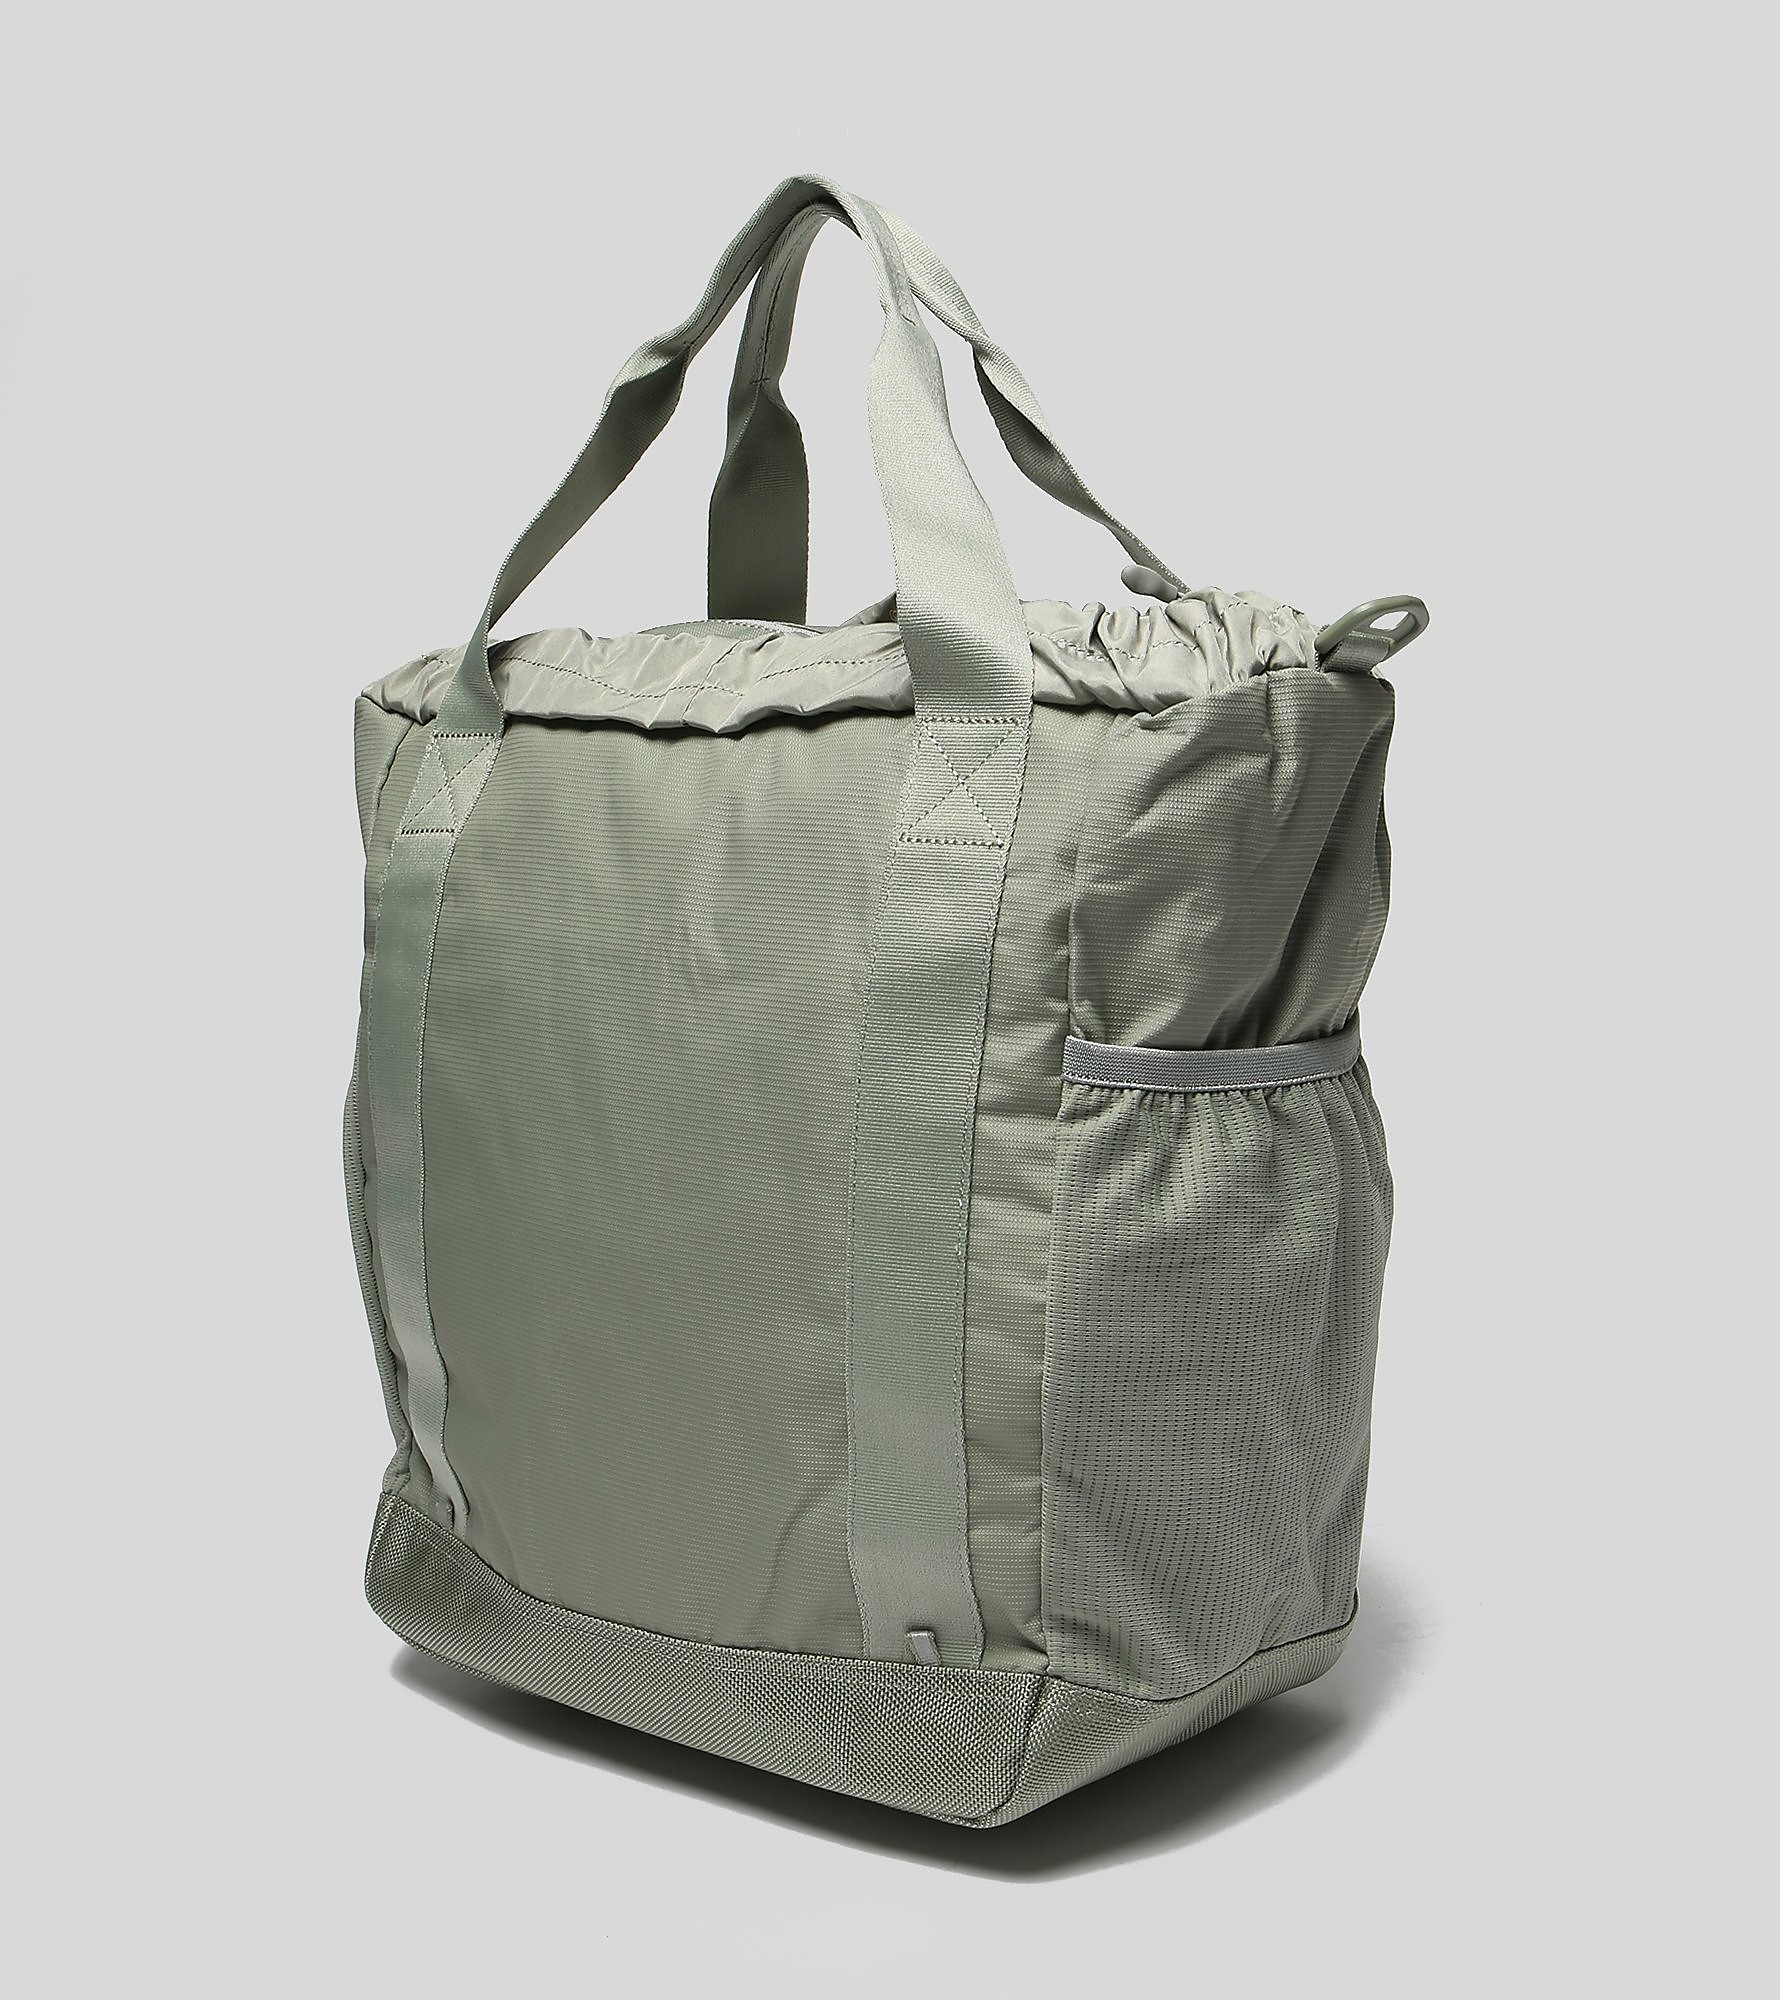 Herschel Supply Co Barnes Tote Bag